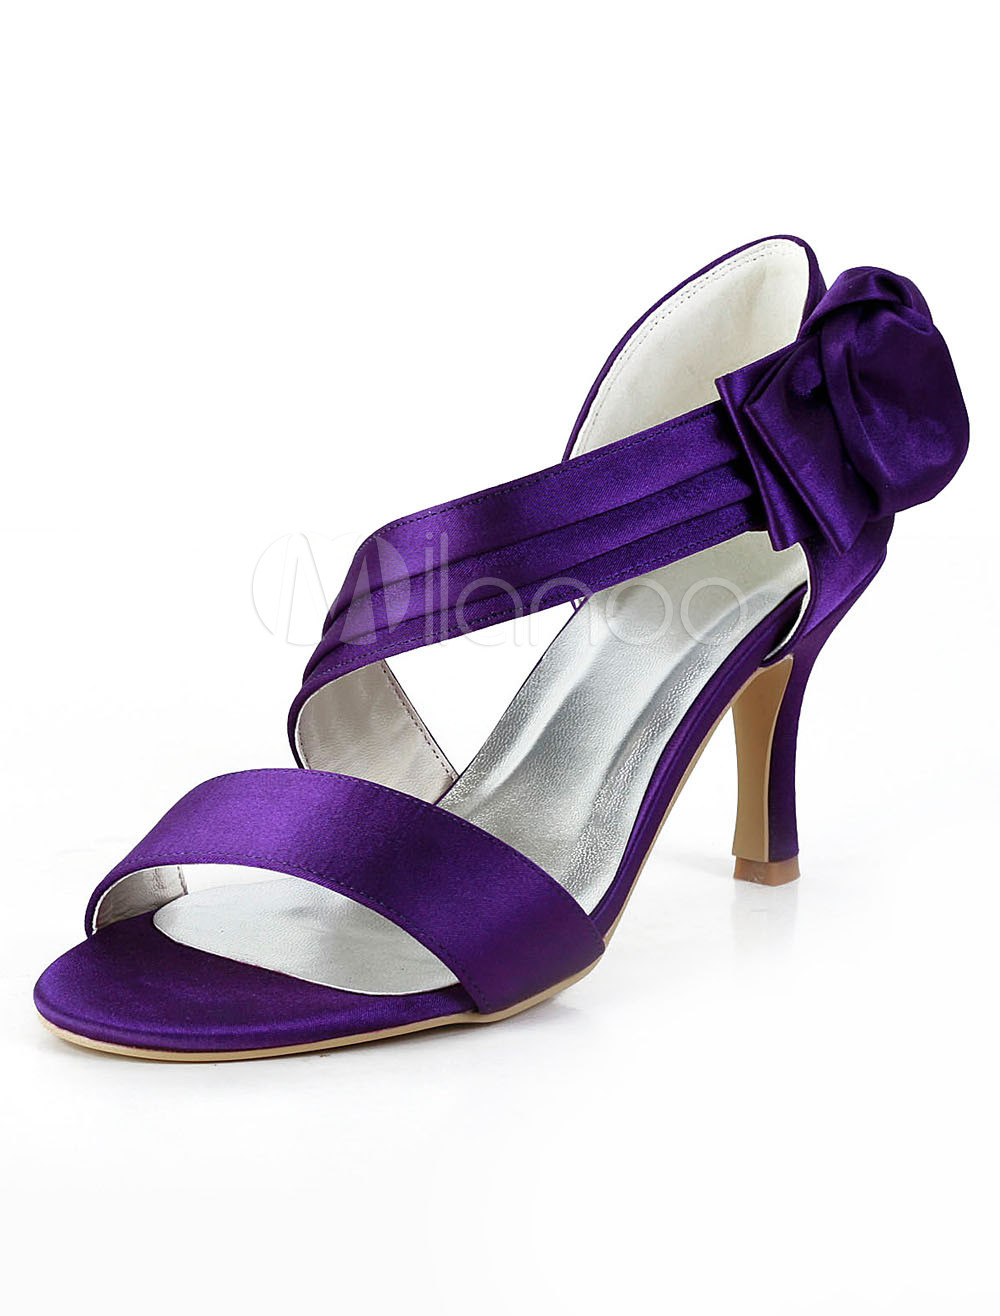 Buy Purple Bow Open Toe Silk And Satin Grace Woman's Evening Shoes for $62.09 in Milanoo store